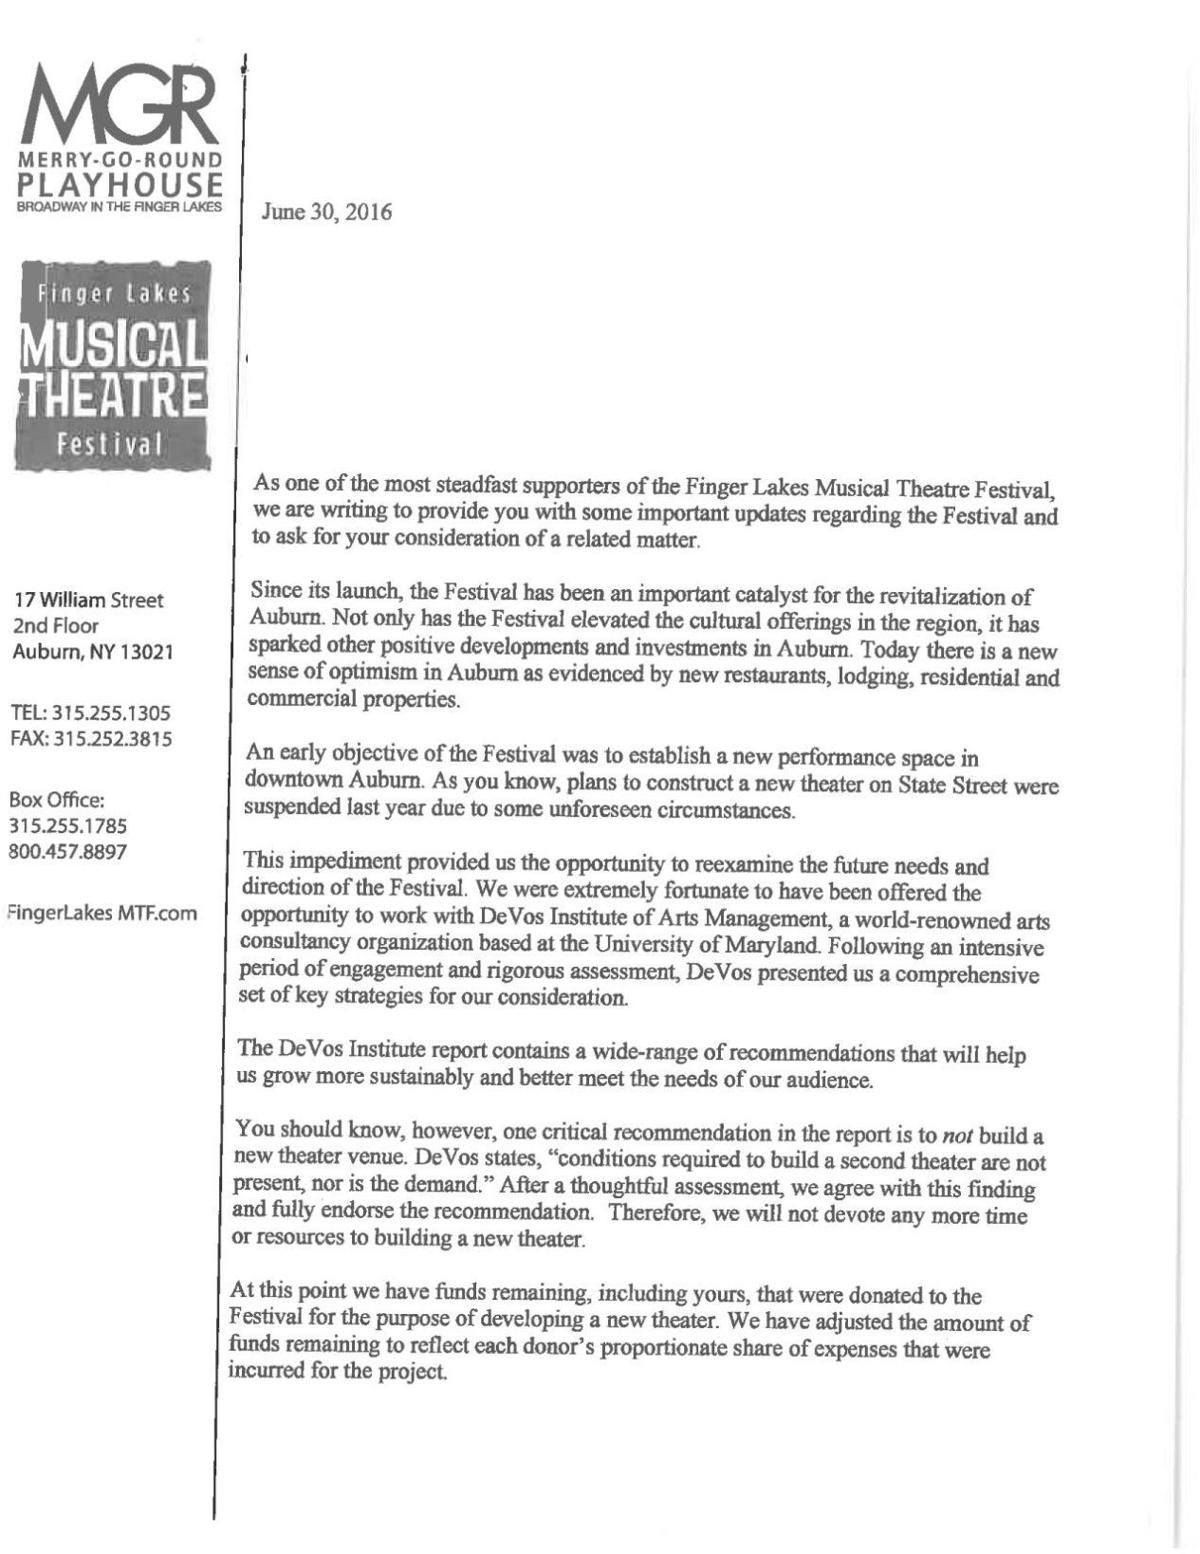 Finger Lakes Musical Theatre Festival summer 2016 letter to donors